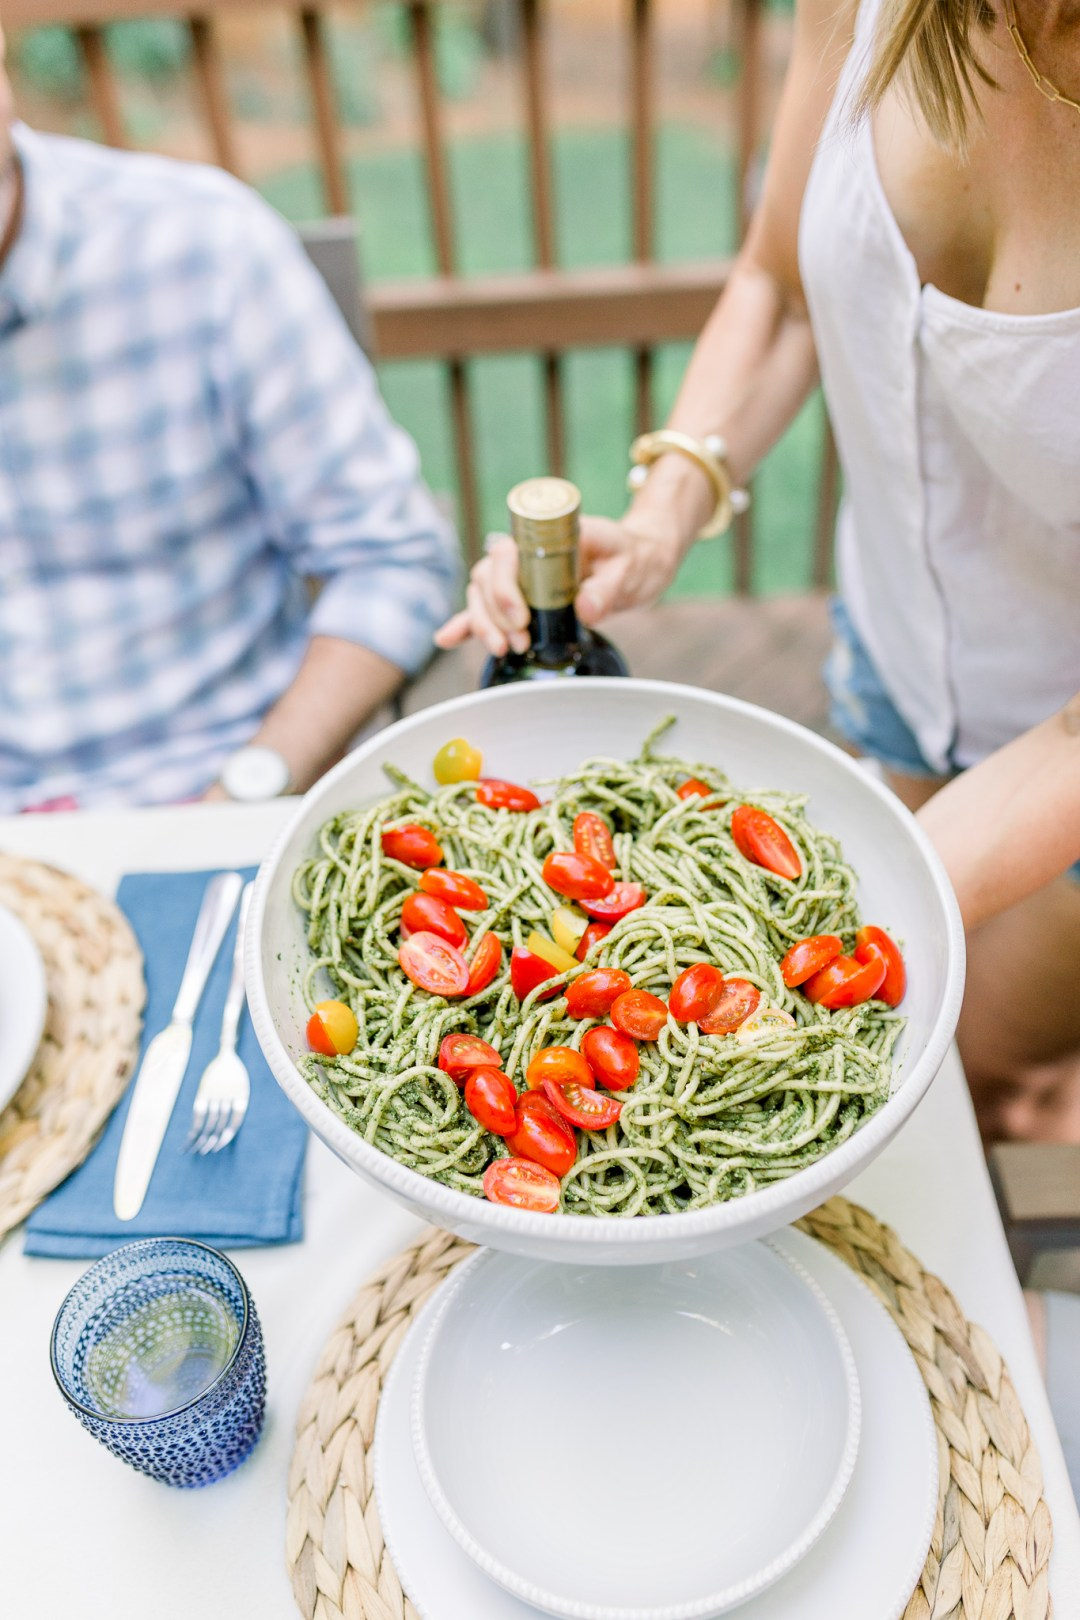 Essentials for Outdoor Dining